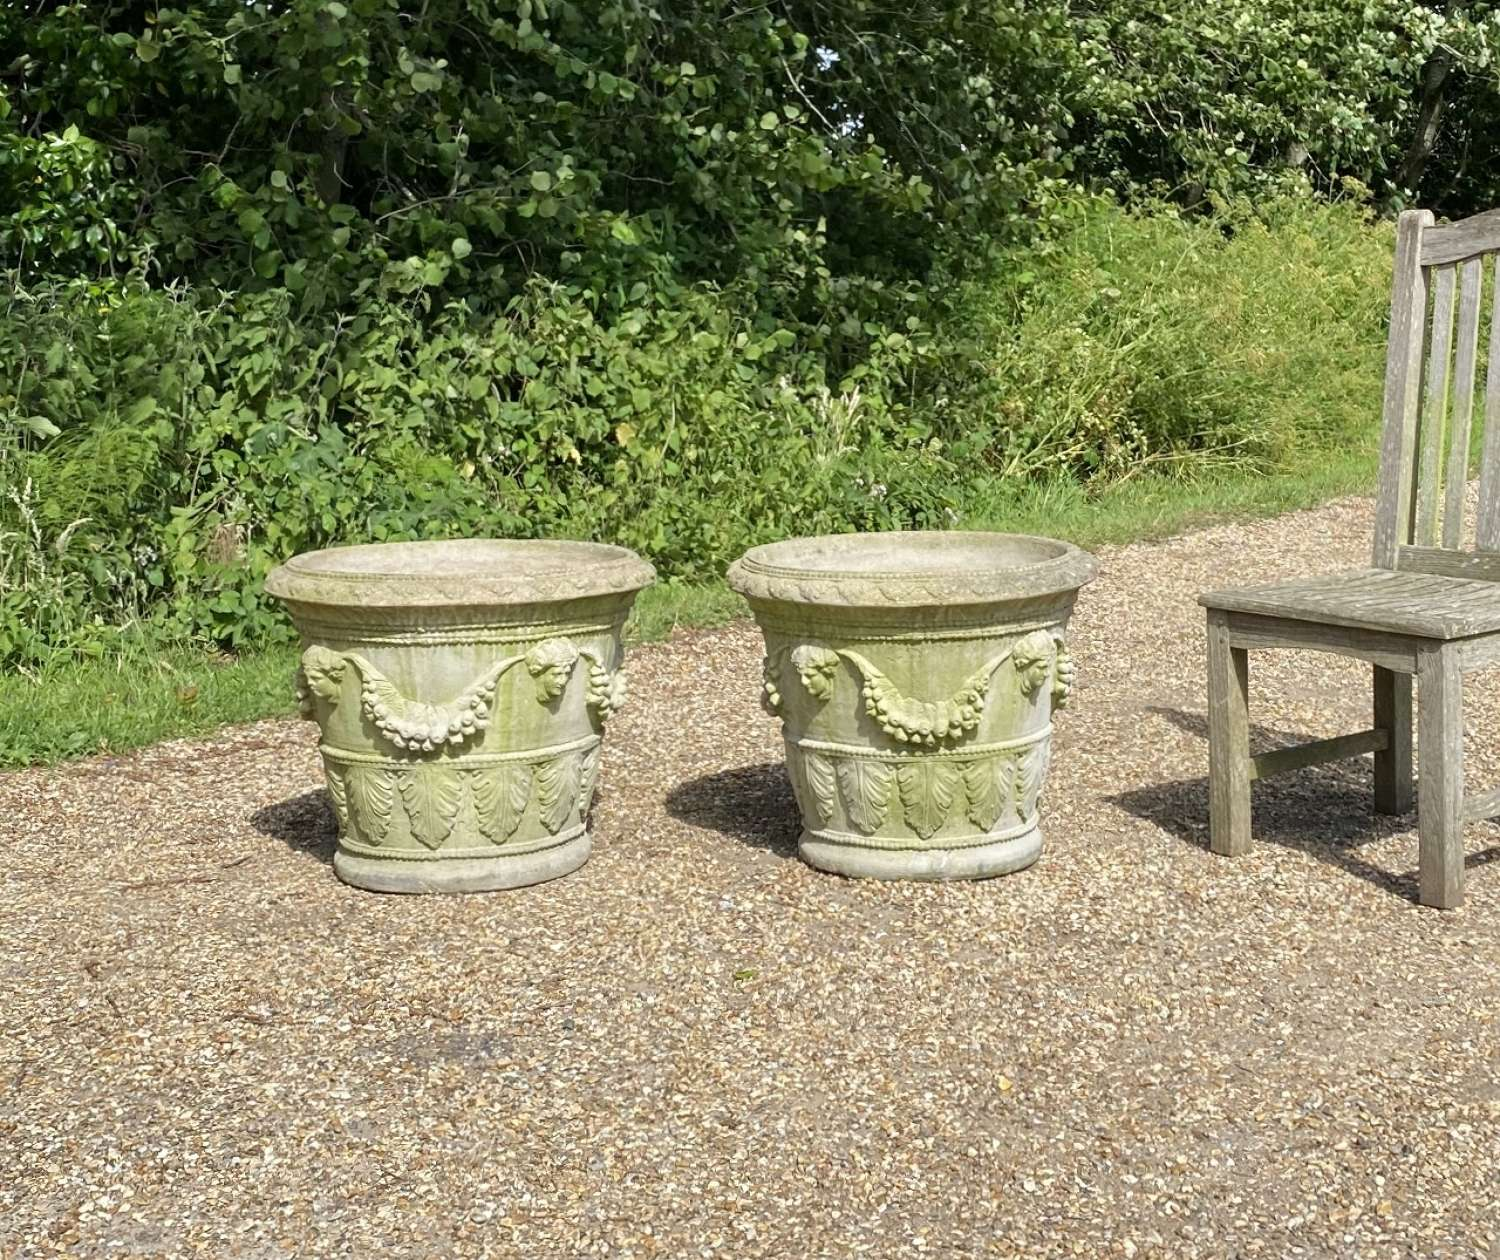 Pair of Large Decorative Planters